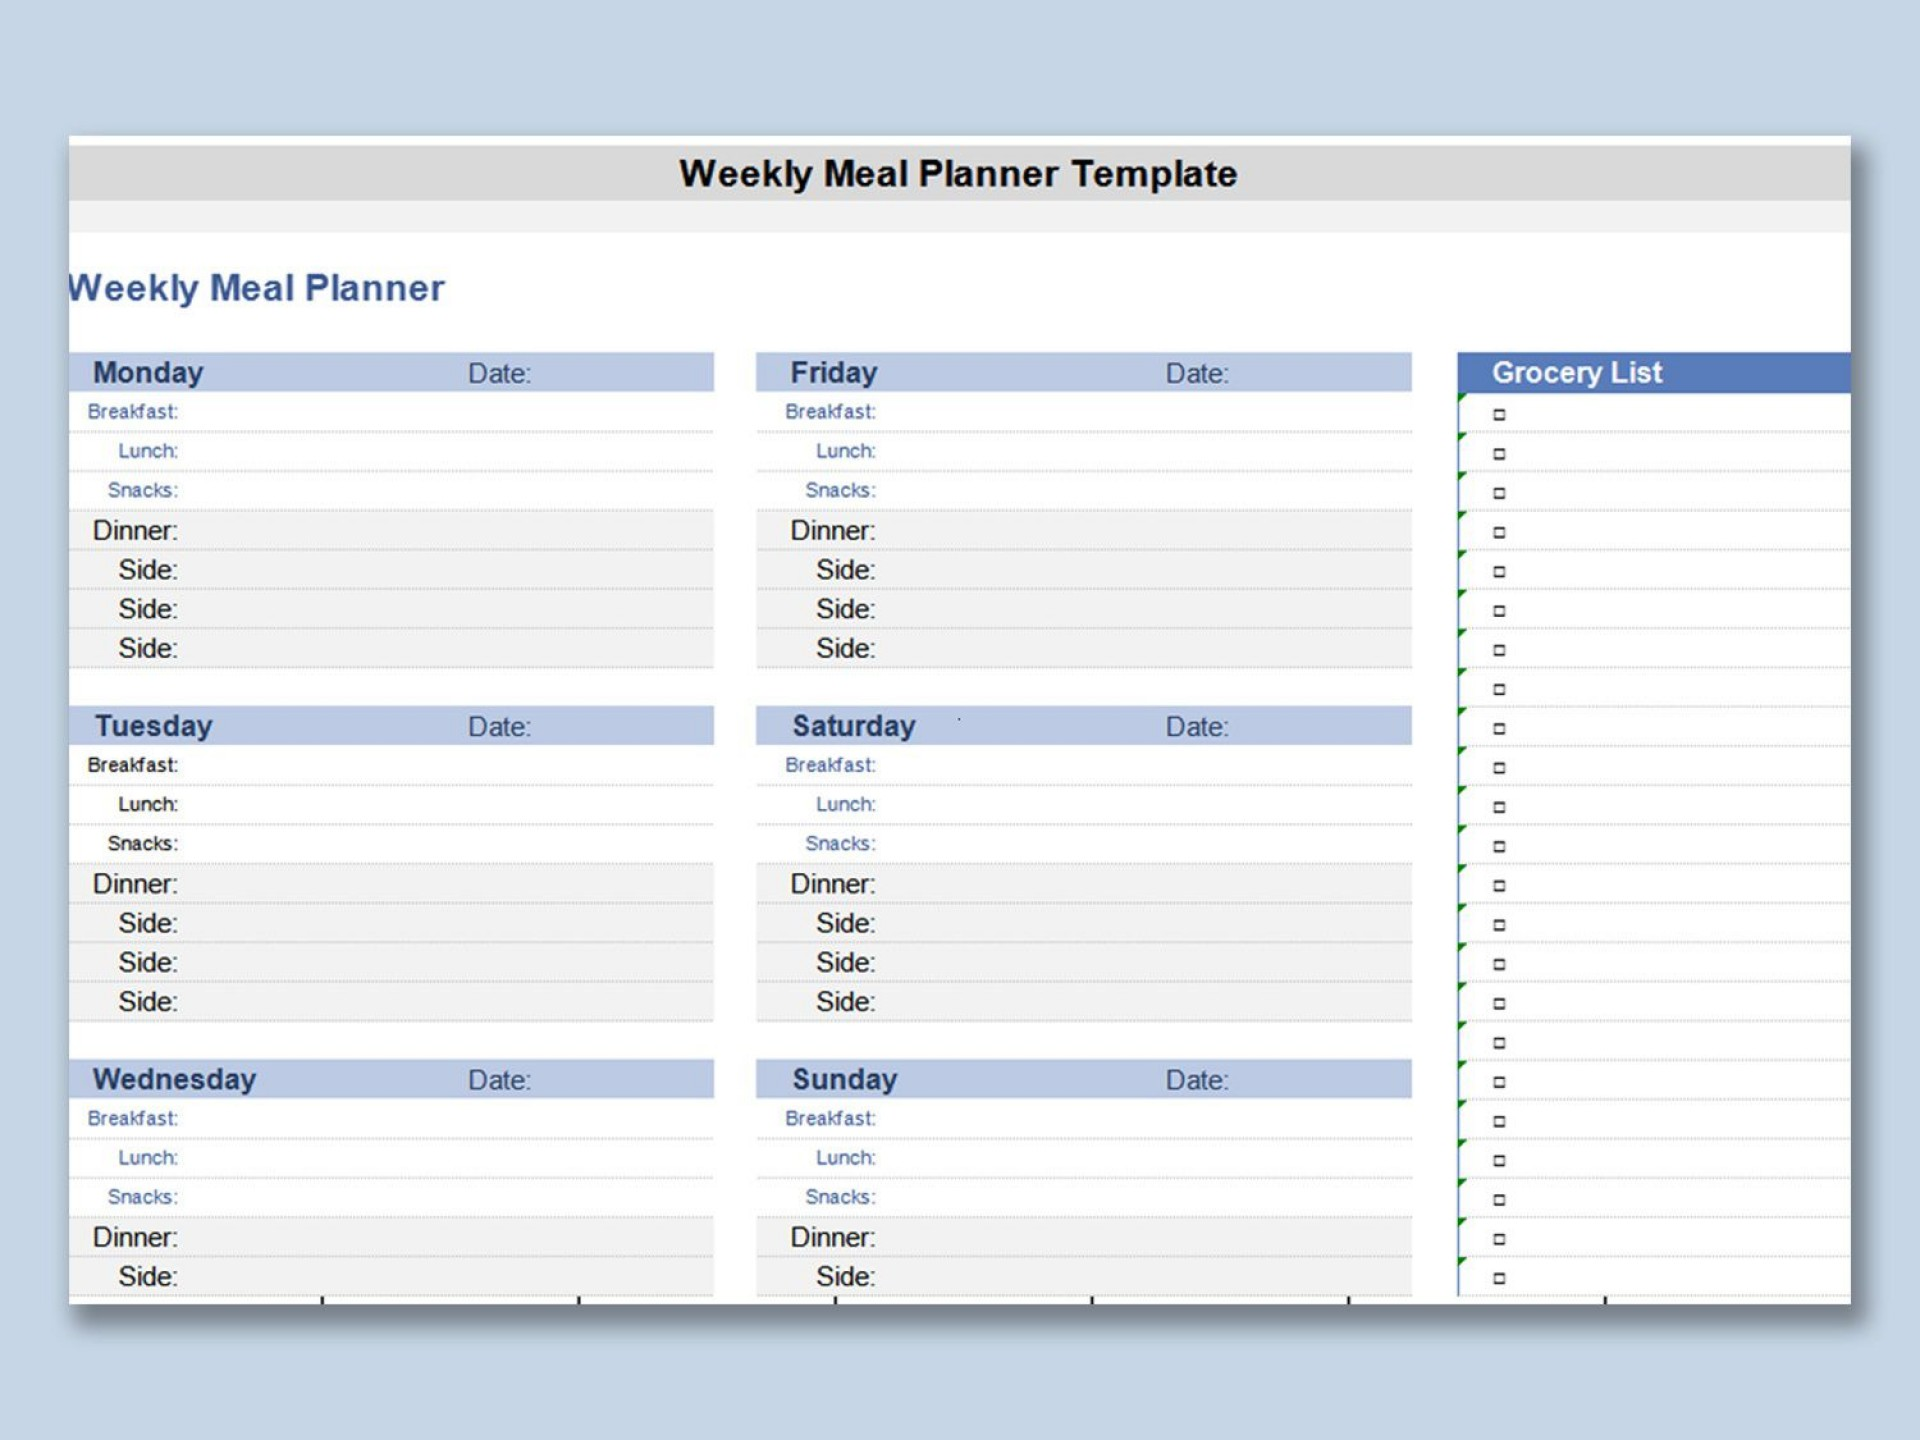 003 Surprising Weekly Meal Planner Template Excel Inspiration  Downloadable Plan Editable1920